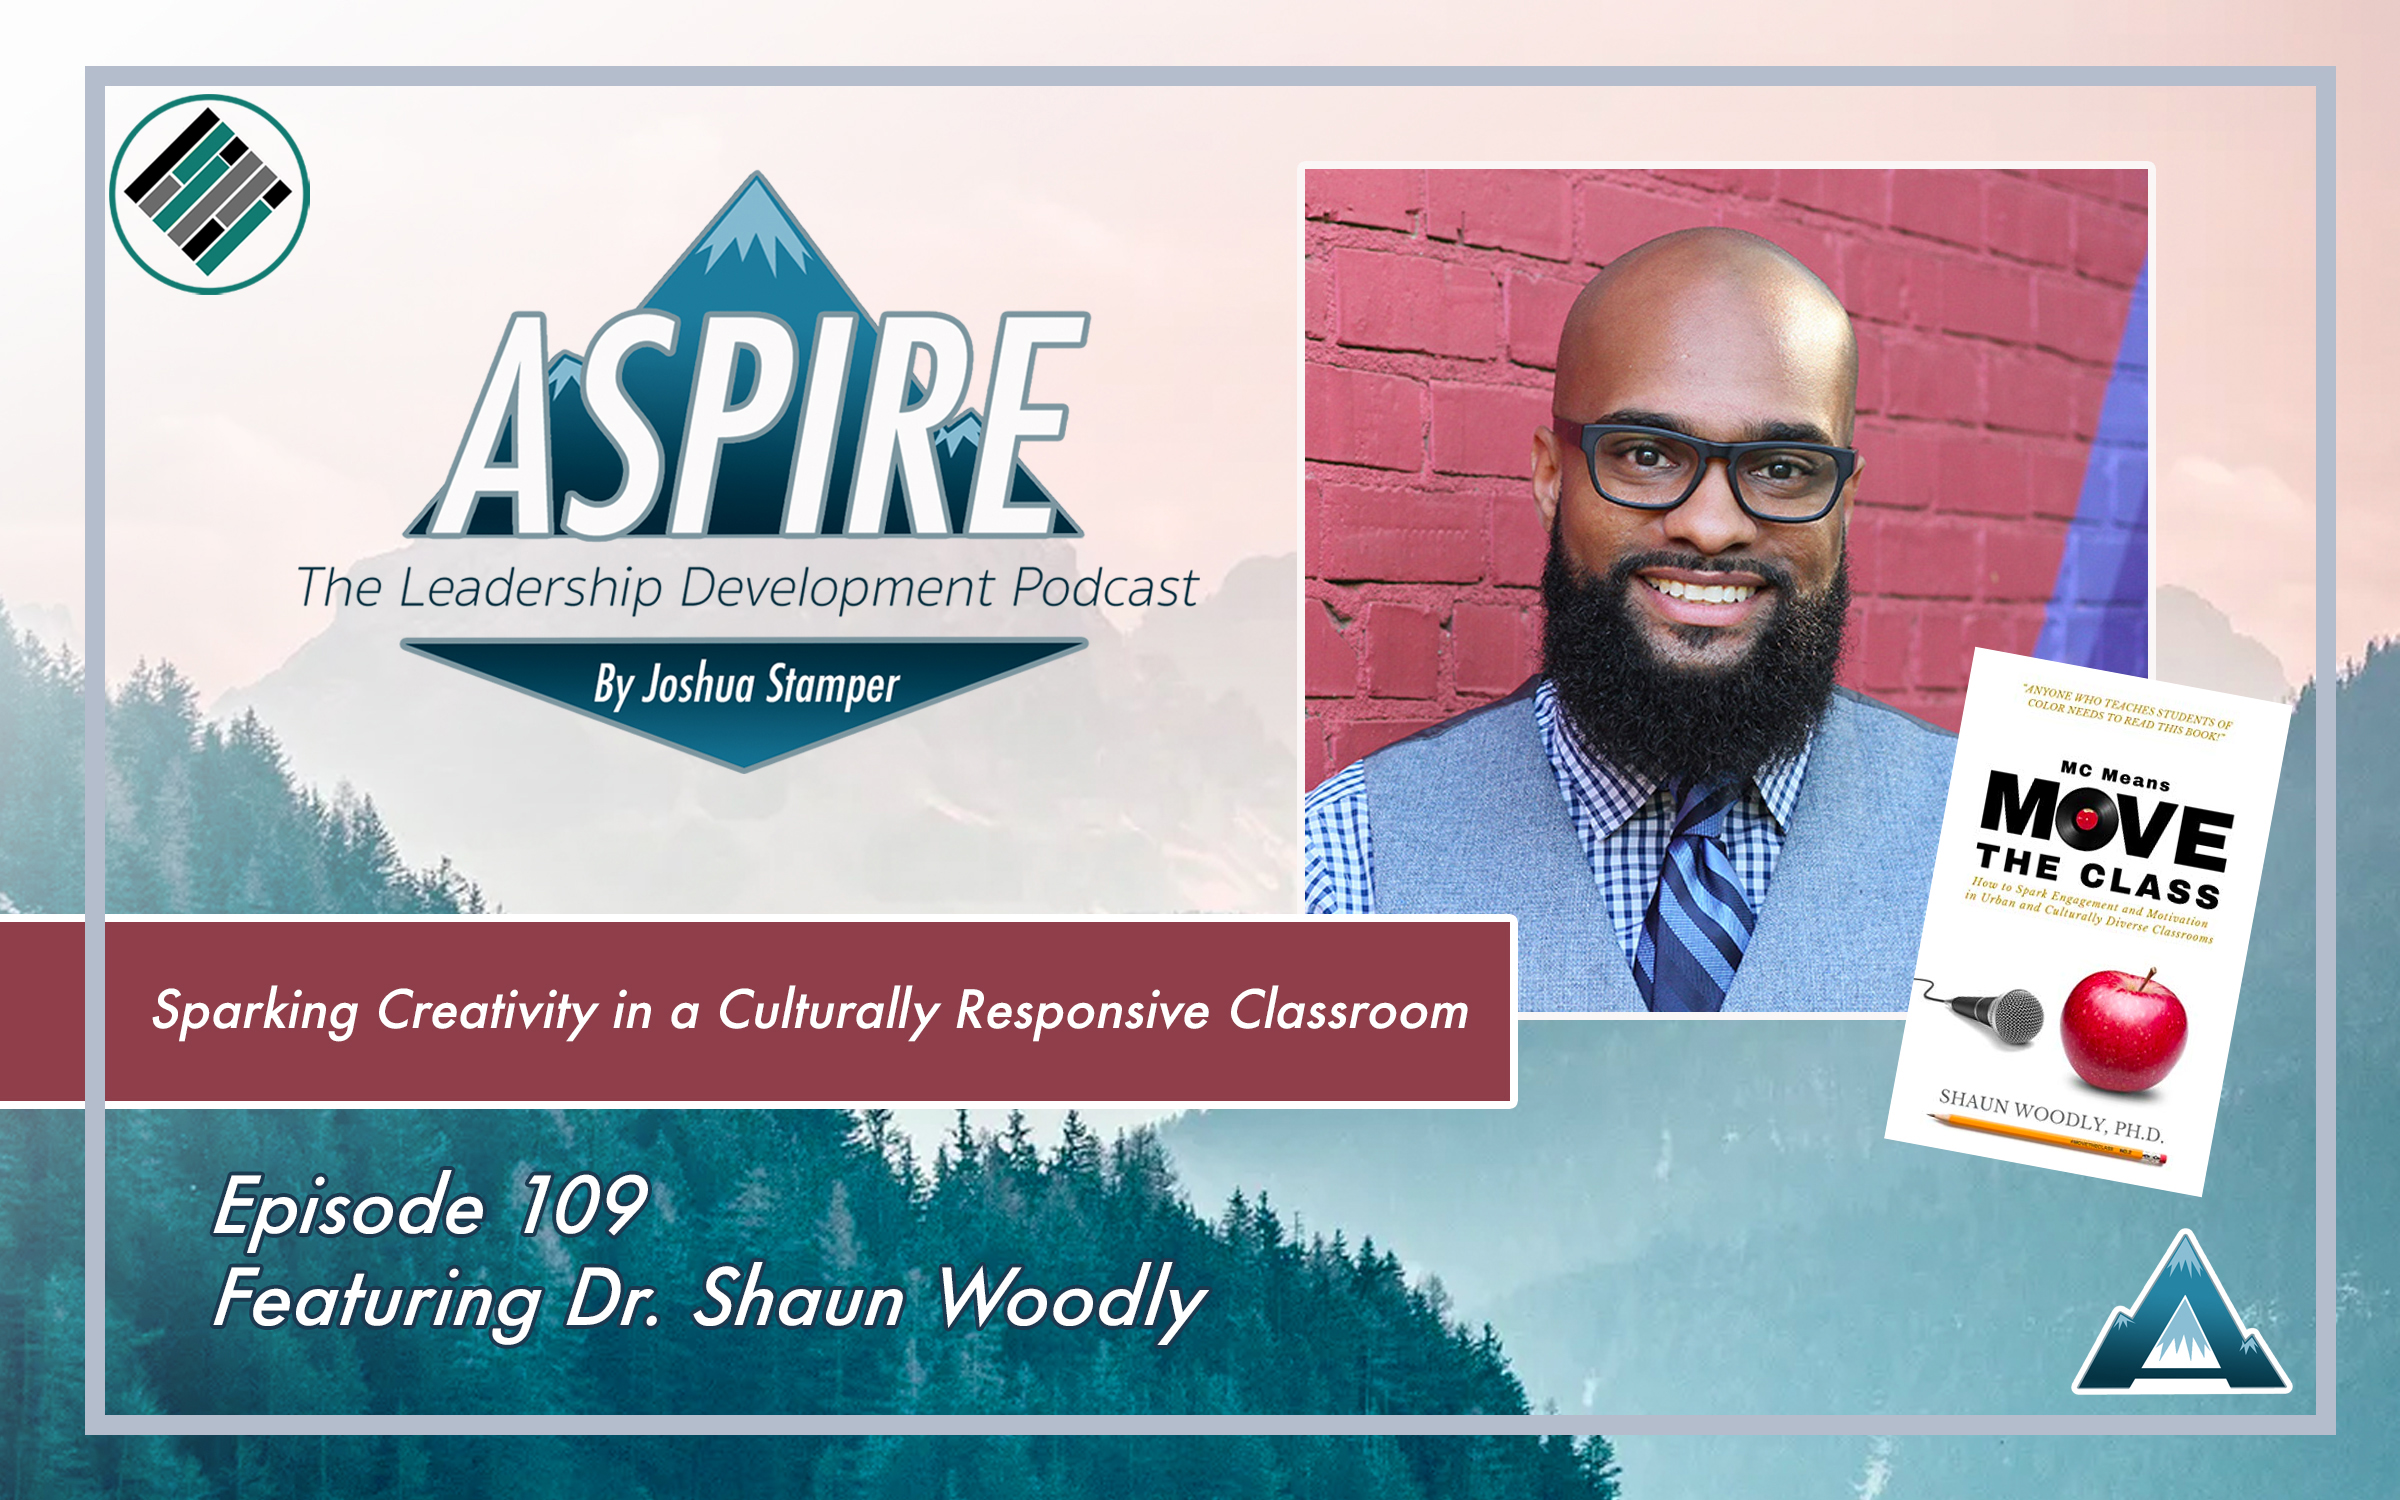 Aspire Podcast, Episode 109, Dr. Shawn Woodly